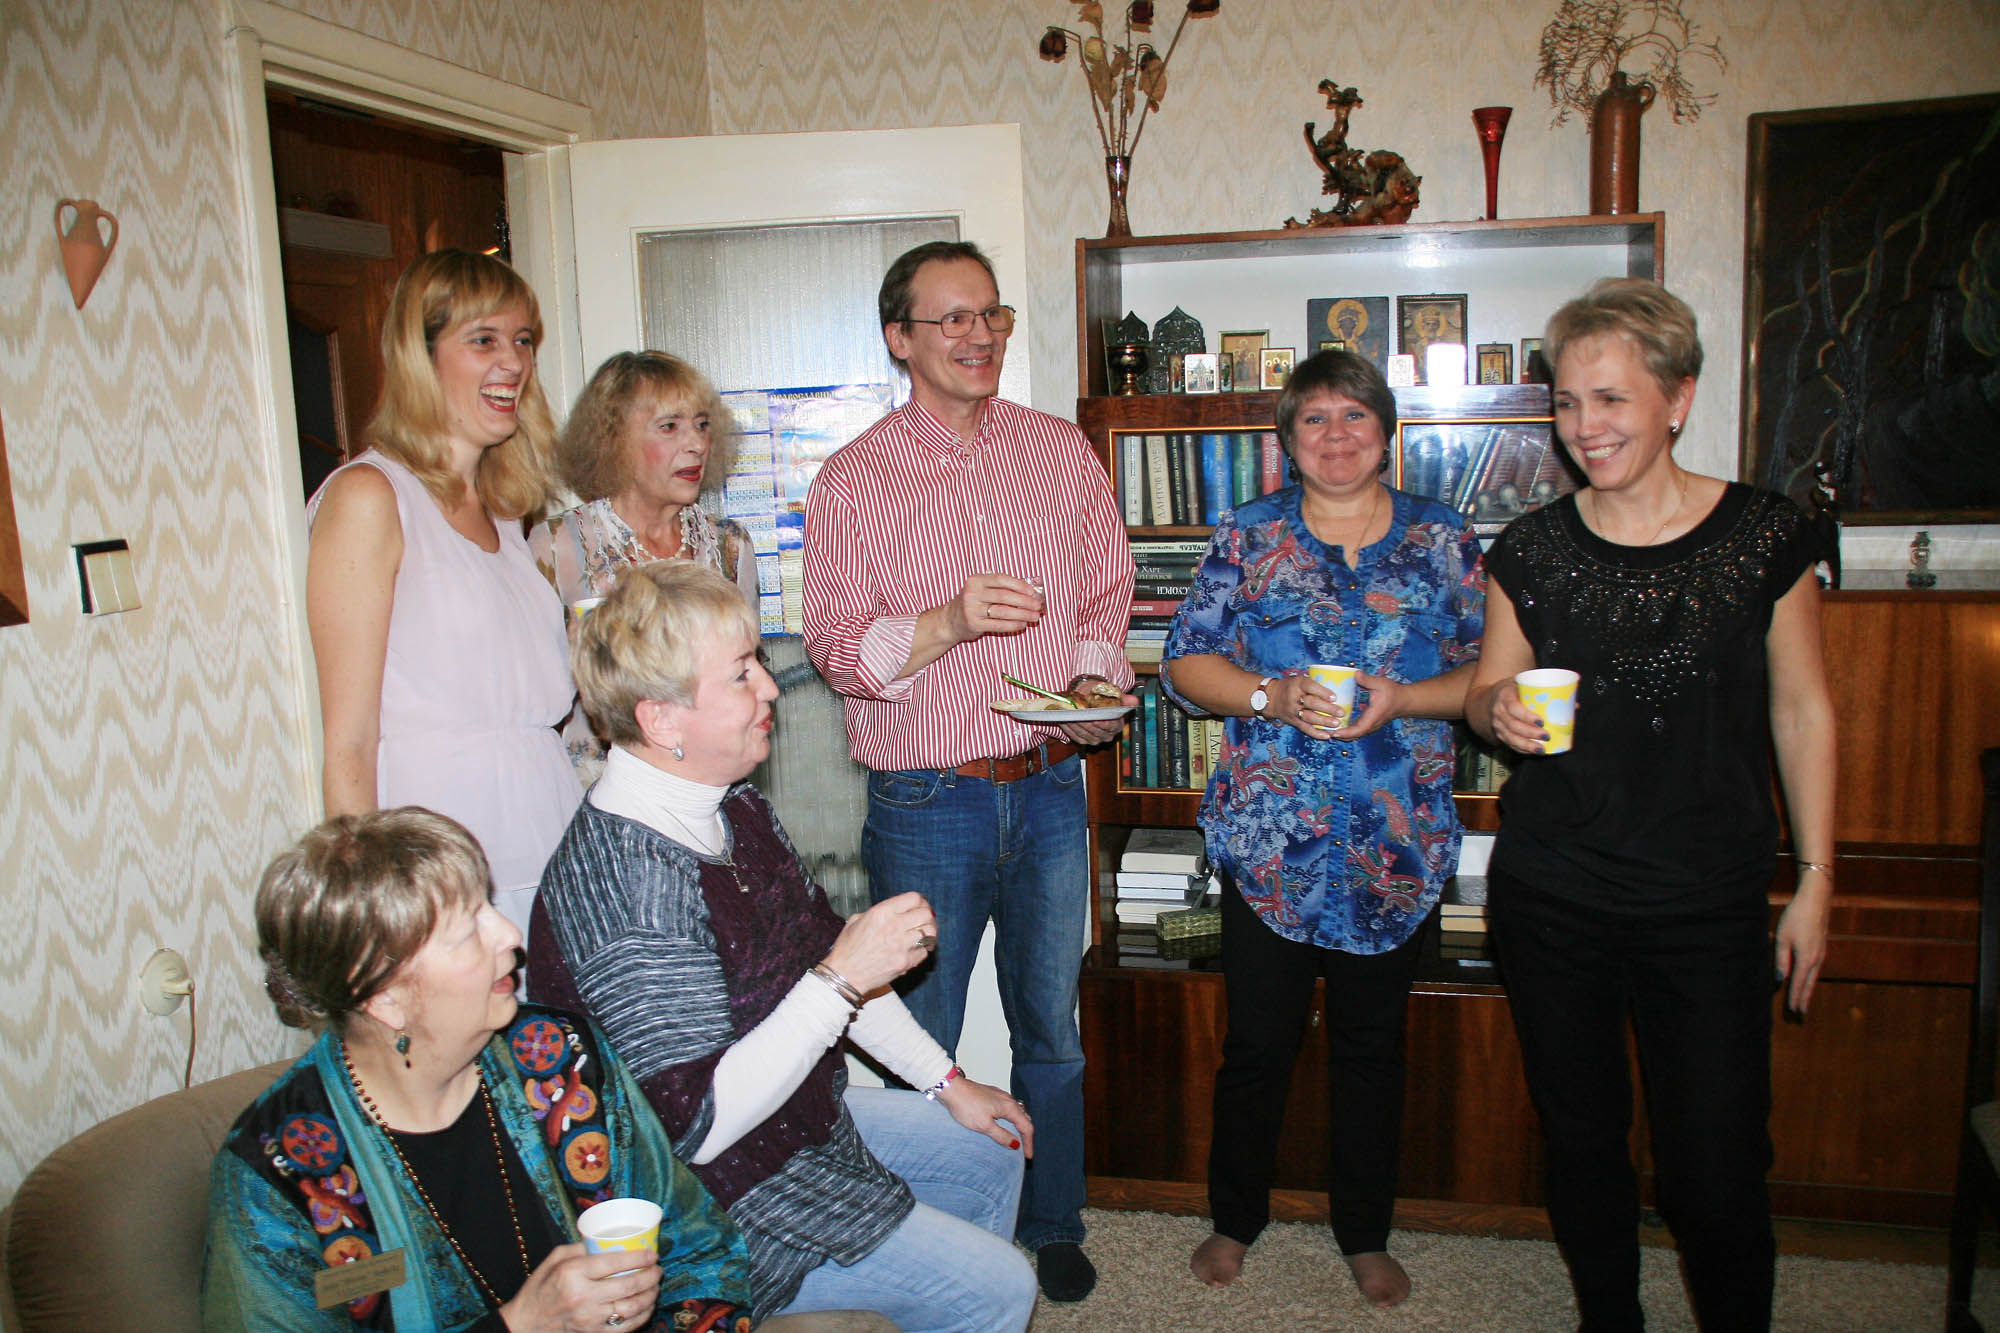 Welcome party at Vera's home in Petro